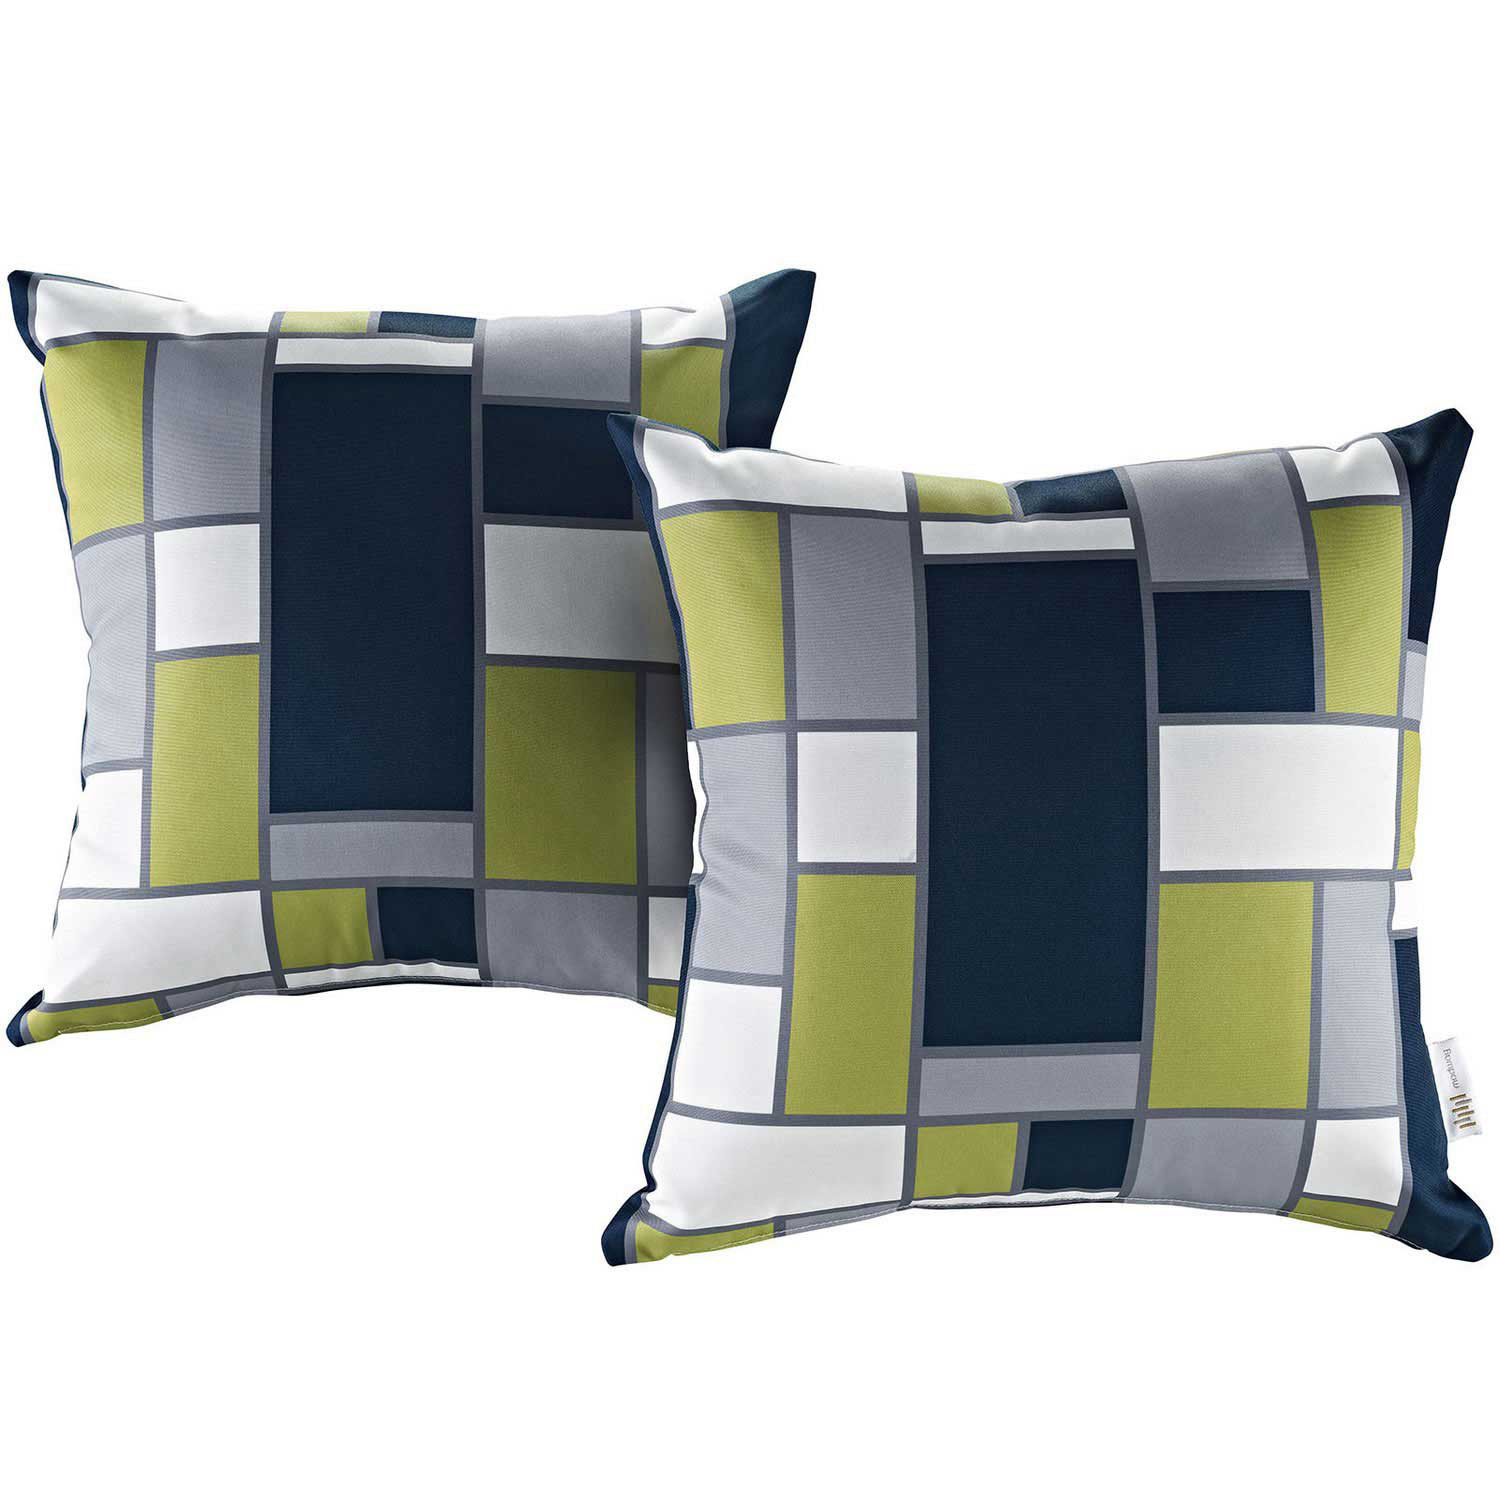 Modway Modway Two Piece Outdoor Patio Pillow Set - Rectangle